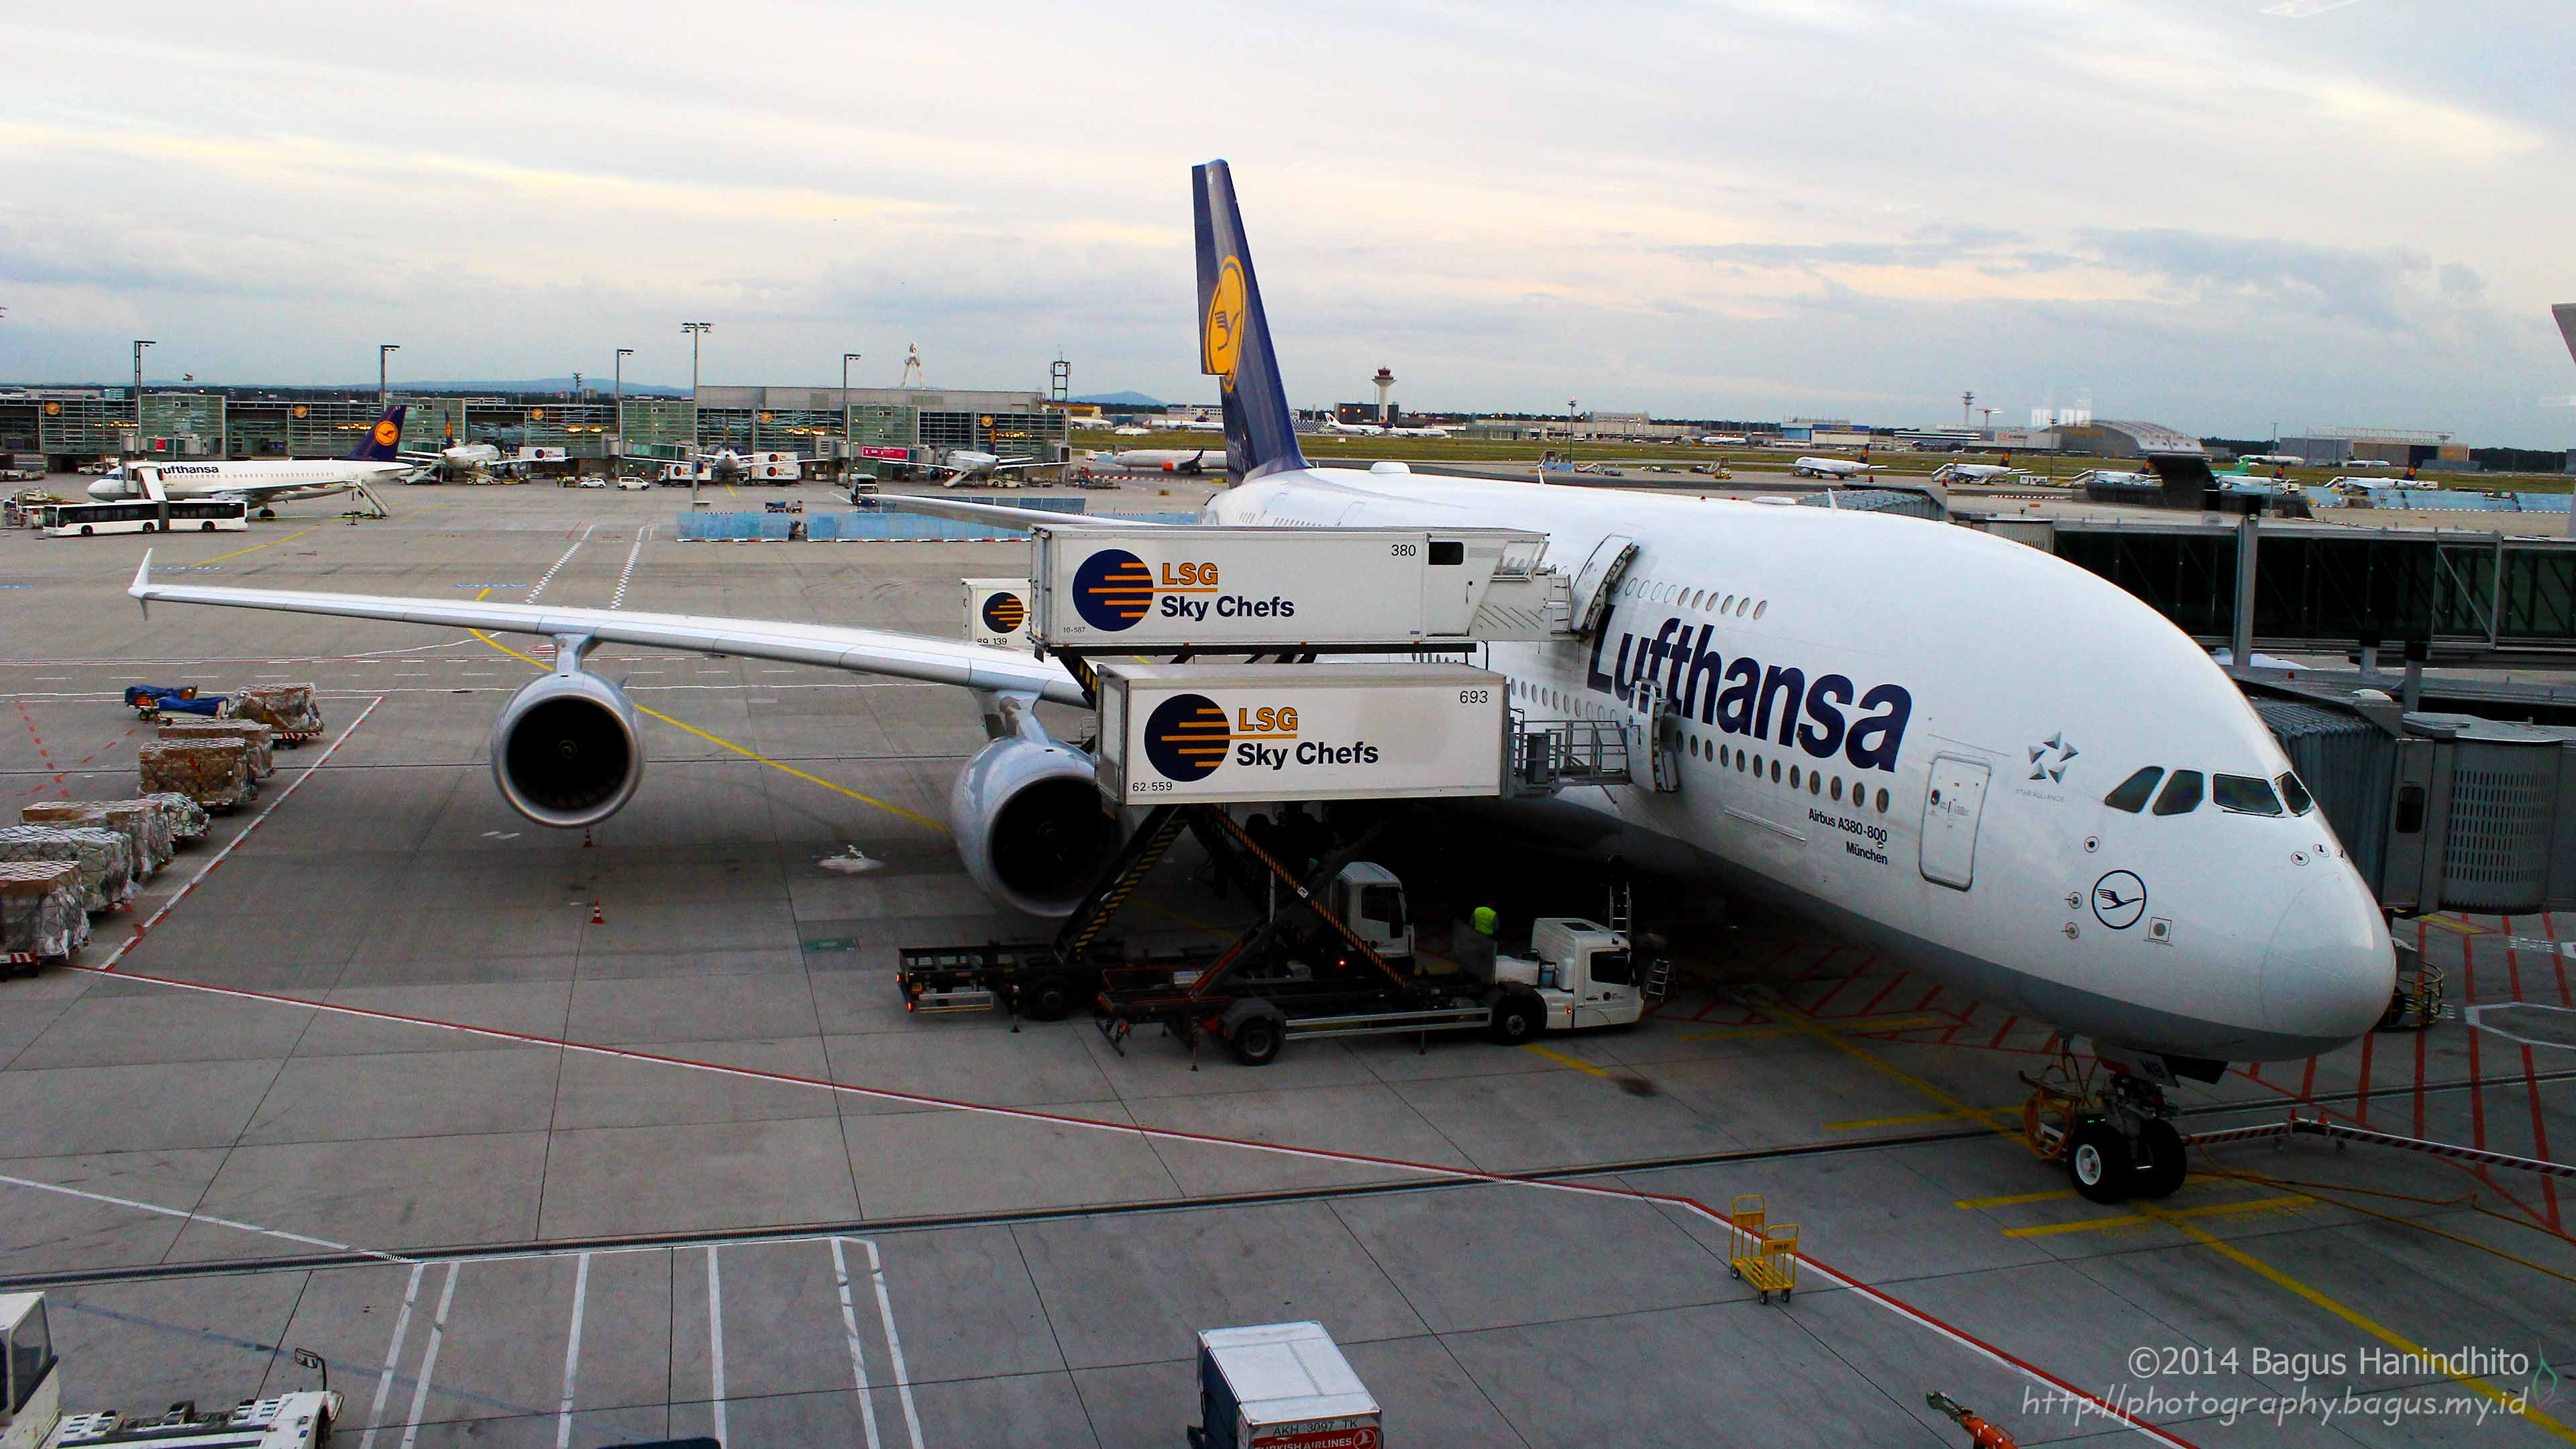 Lufthansa Airbus A380-800 codename München served the flight LH778 from FRA to SIN.